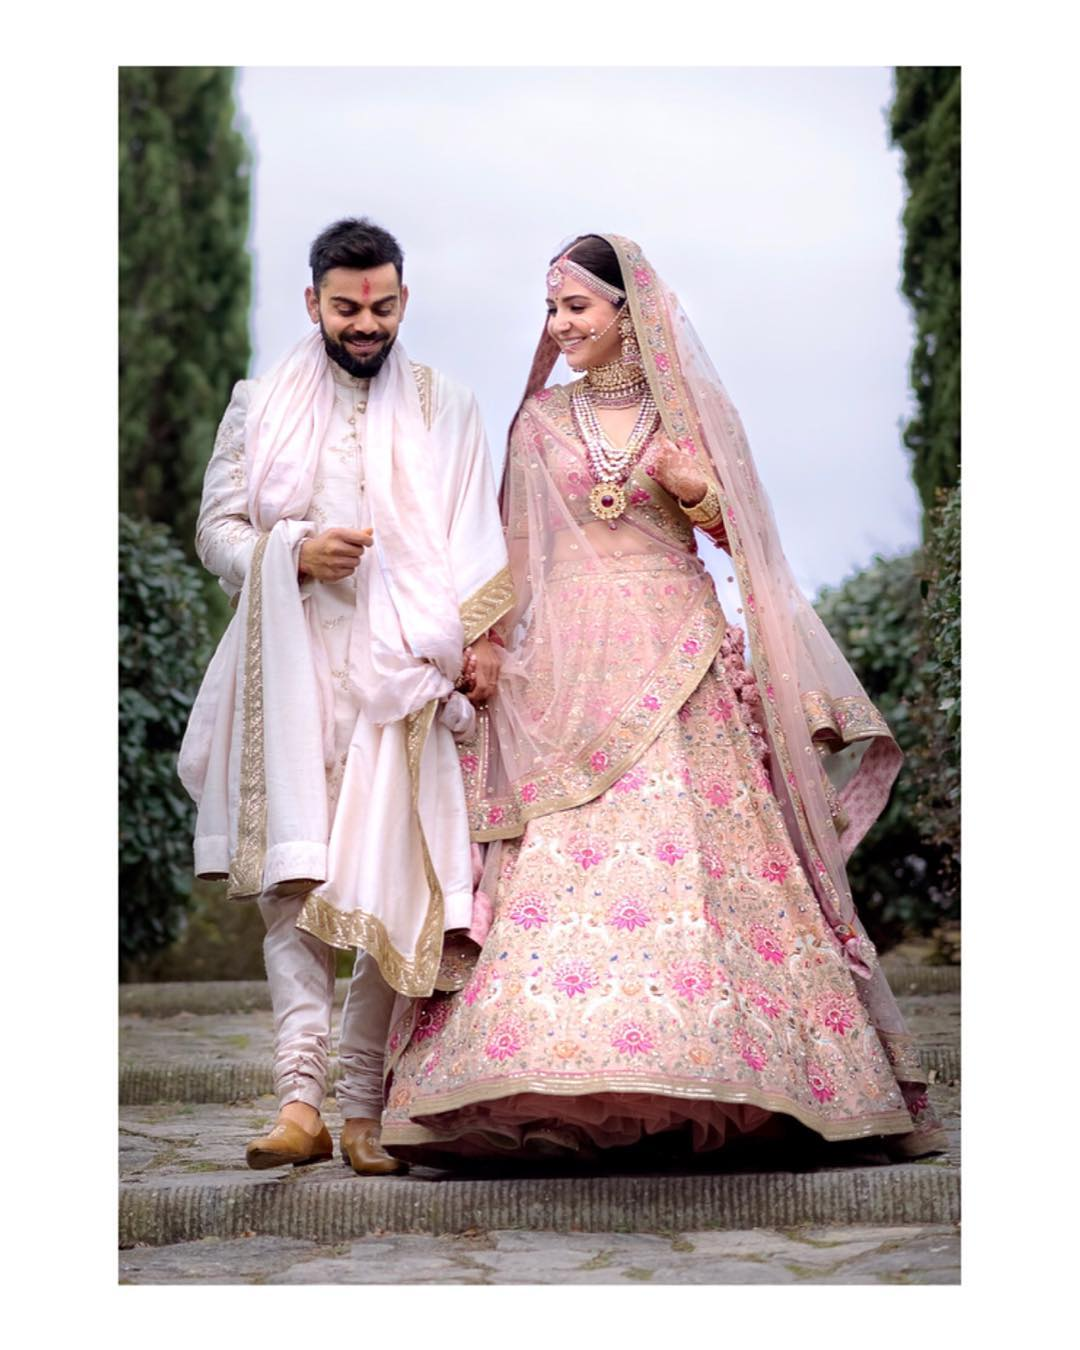 16 Wedding Ideas To Steal From The #Virushka Shaadi! - UrbanClap